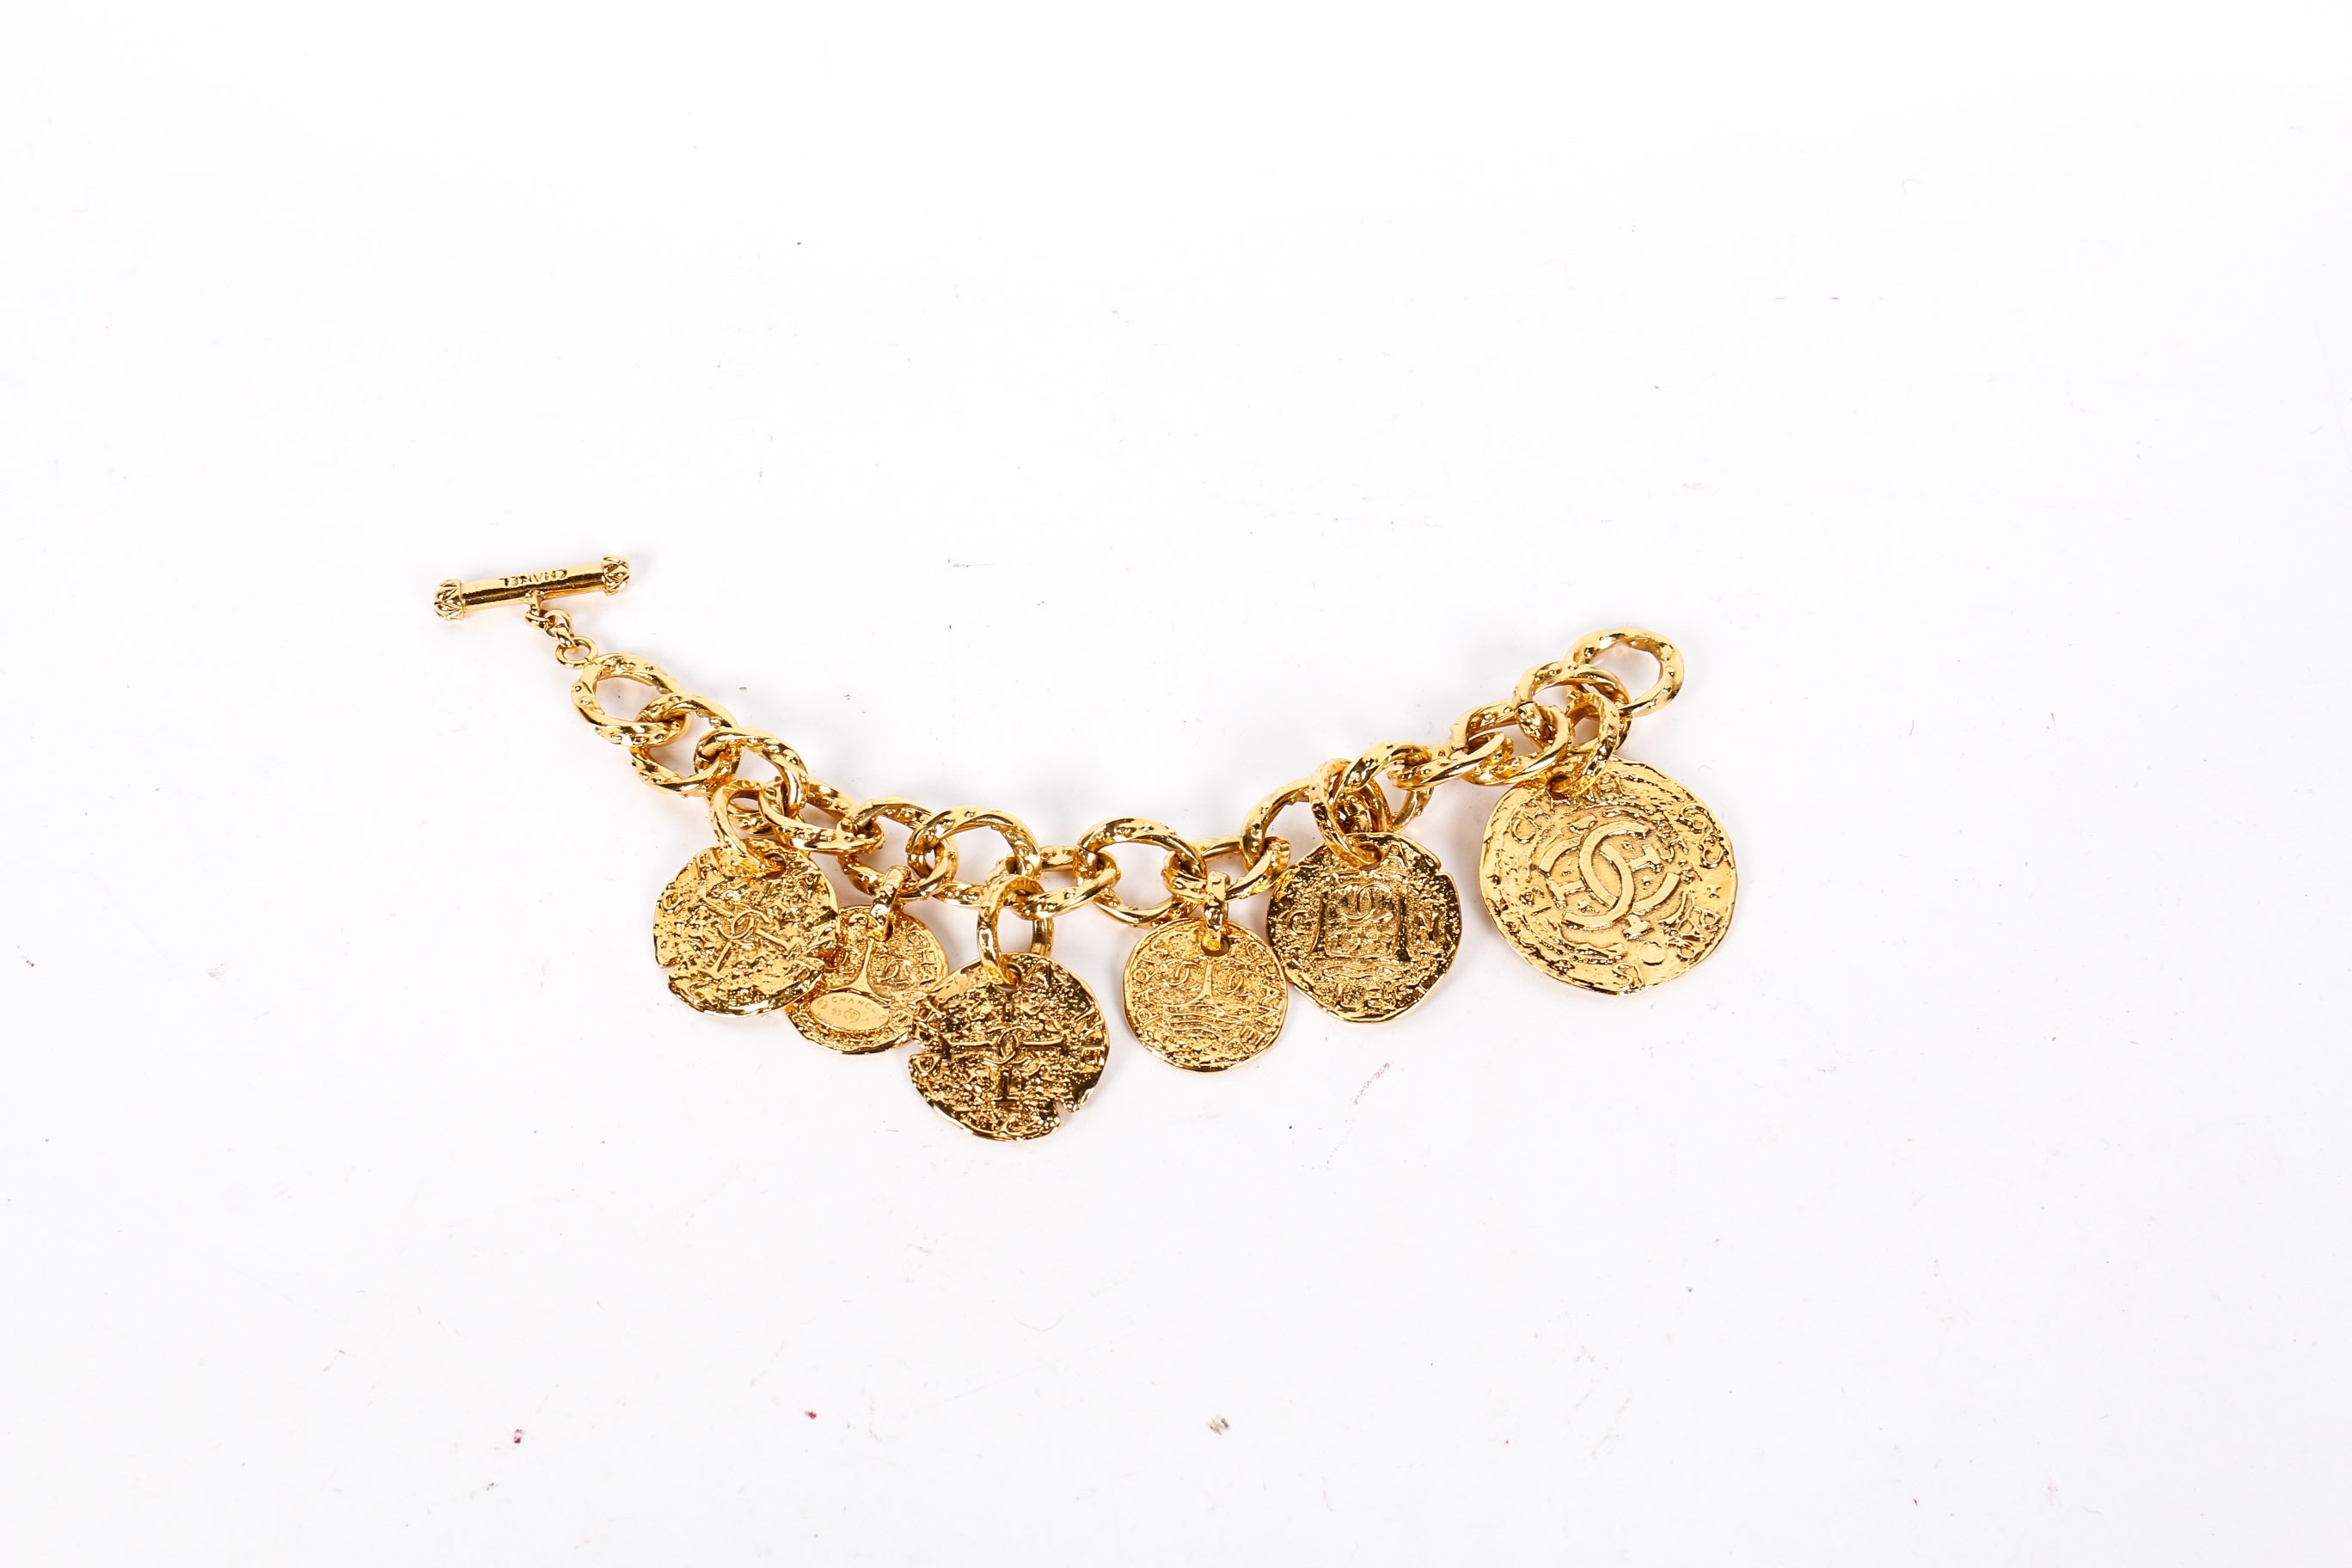 Gold Toned Chanel Bracelet